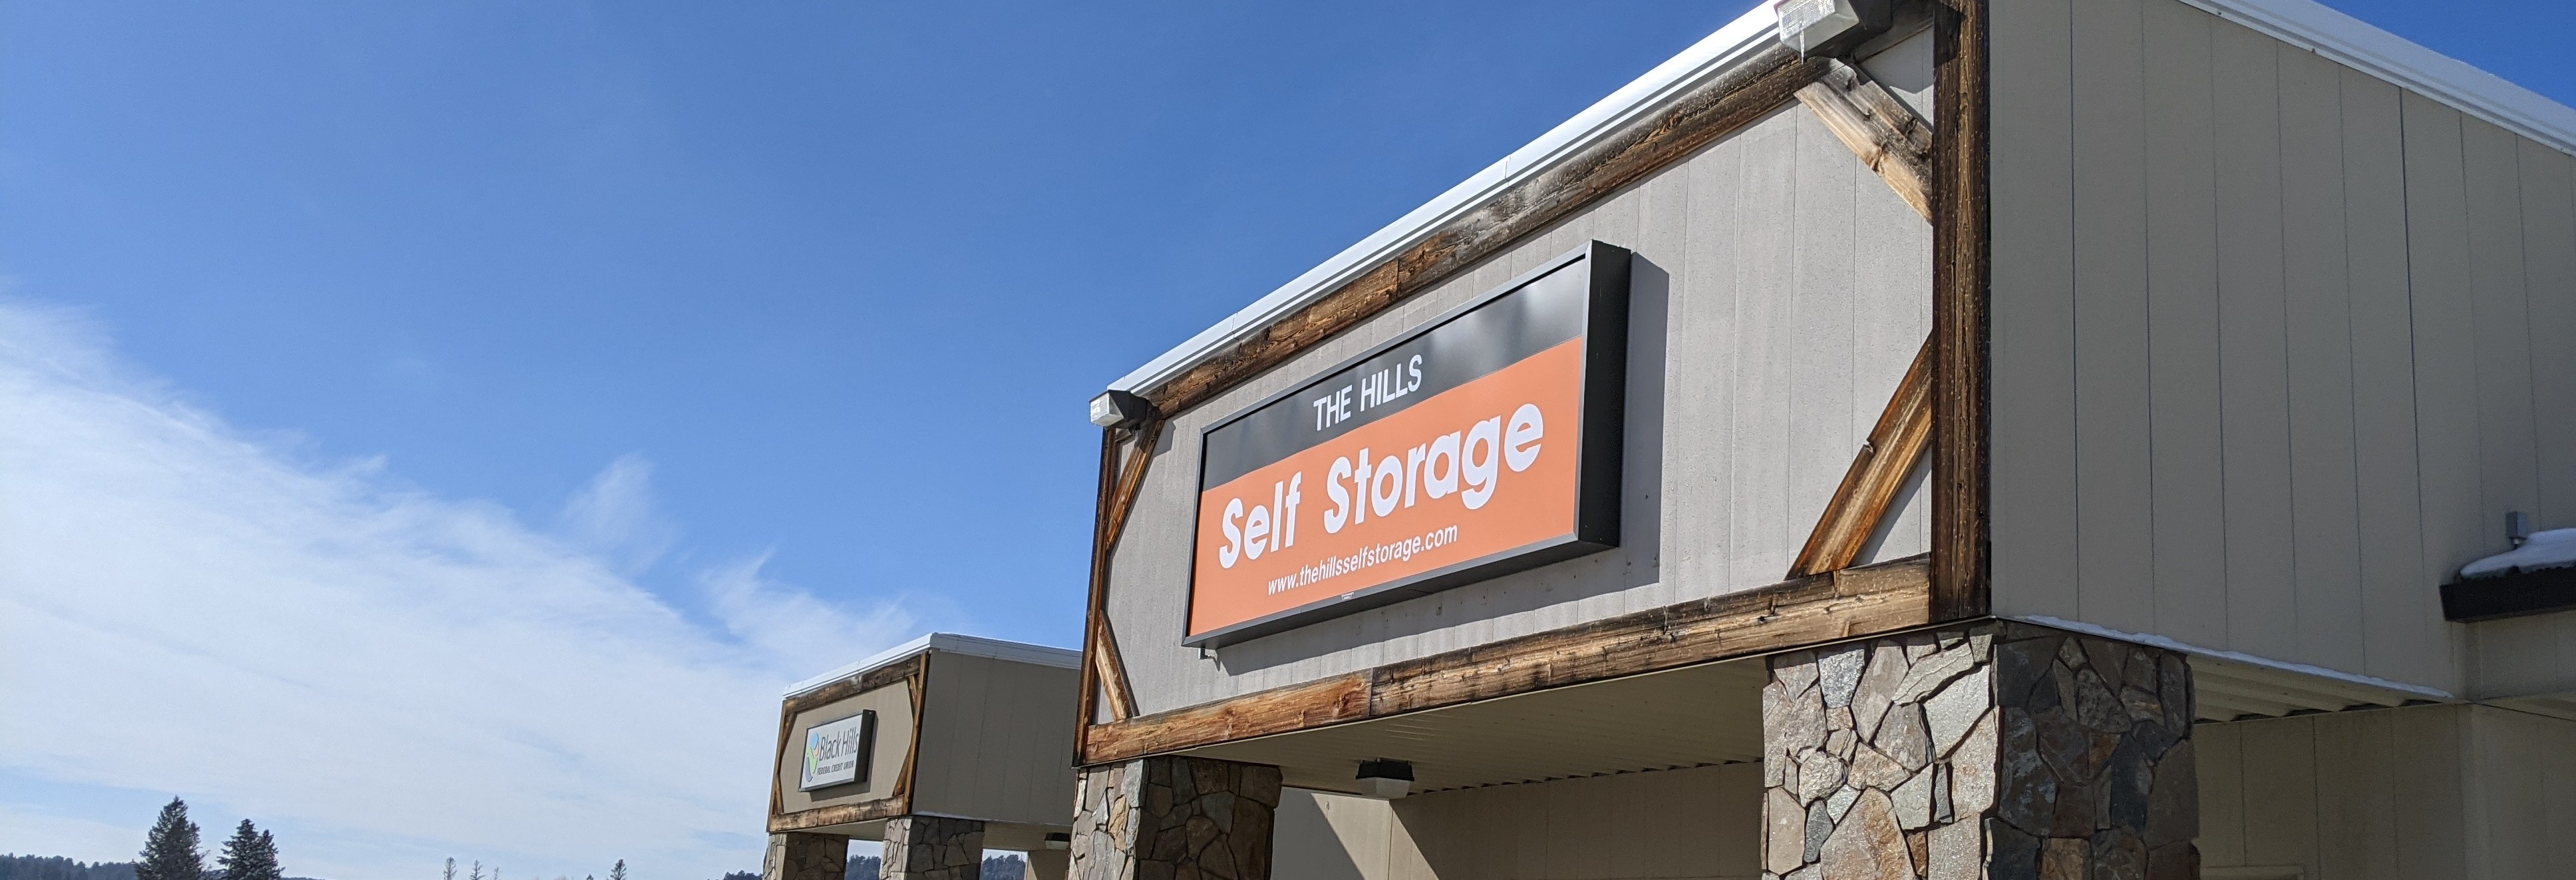 the hills self storage front sign